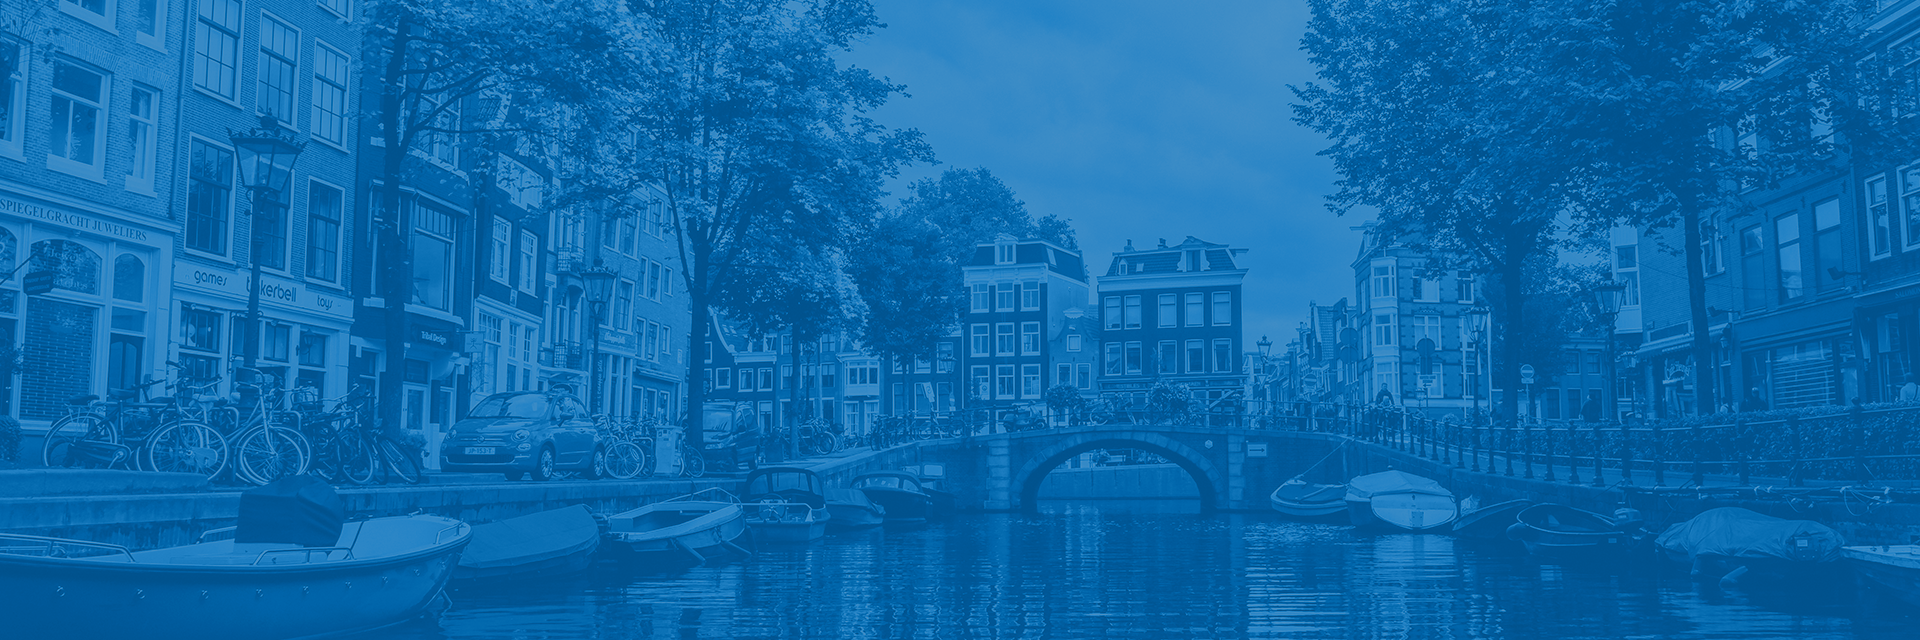 If you feel like you could make a contribution to our organization, we want to hear from you. We are currently looking for great people to fill several roles in the Netherlands.